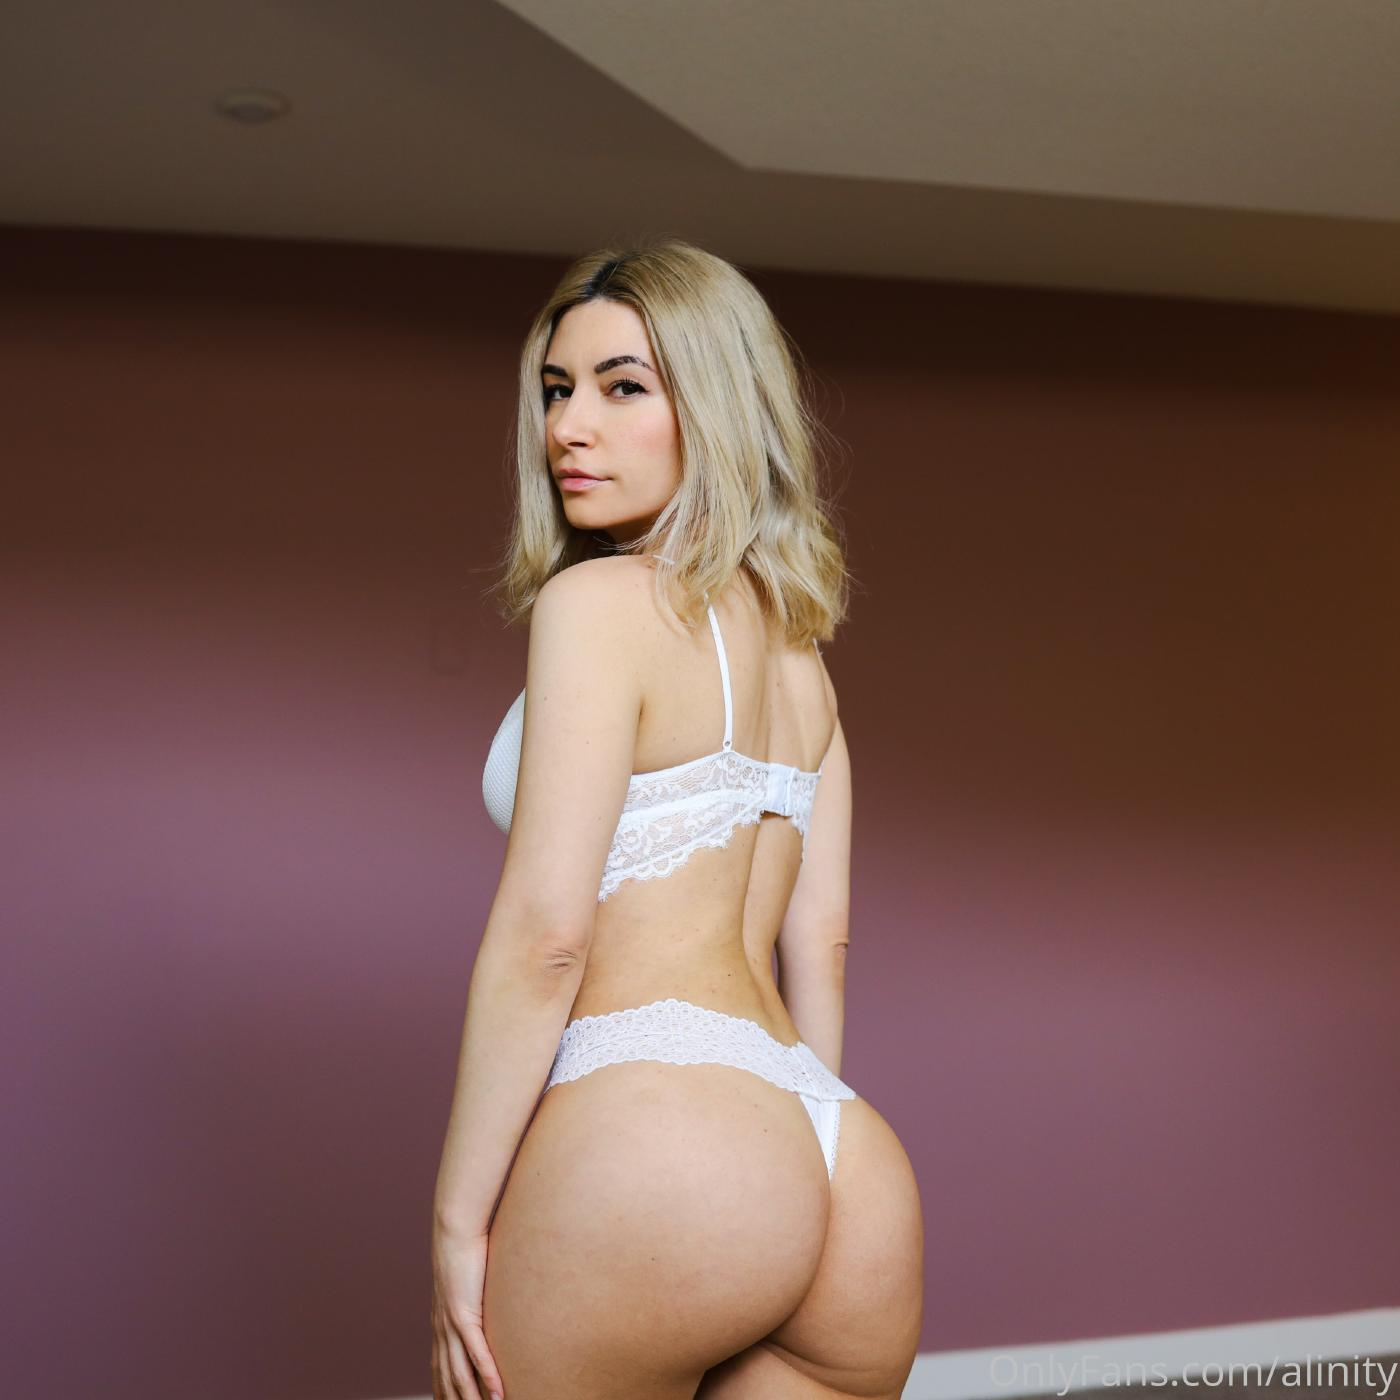 Alinity Nude Pussy Tease Onlyfans Set Leaked 0008